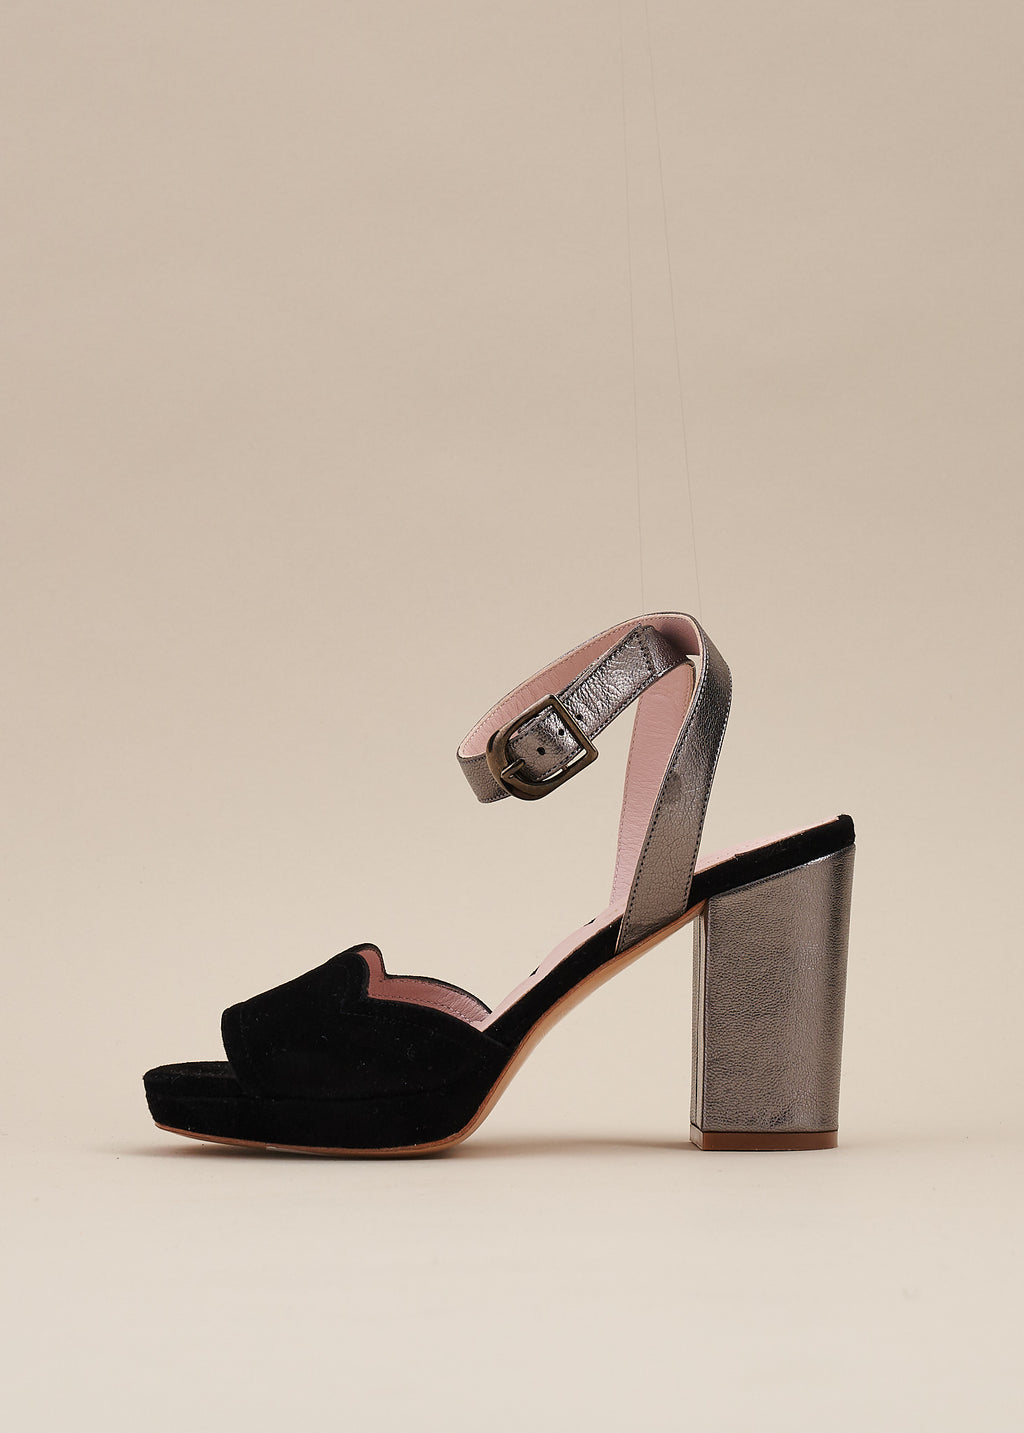 Madeline Black and Pewter Platform Sandal - PRE ORDER